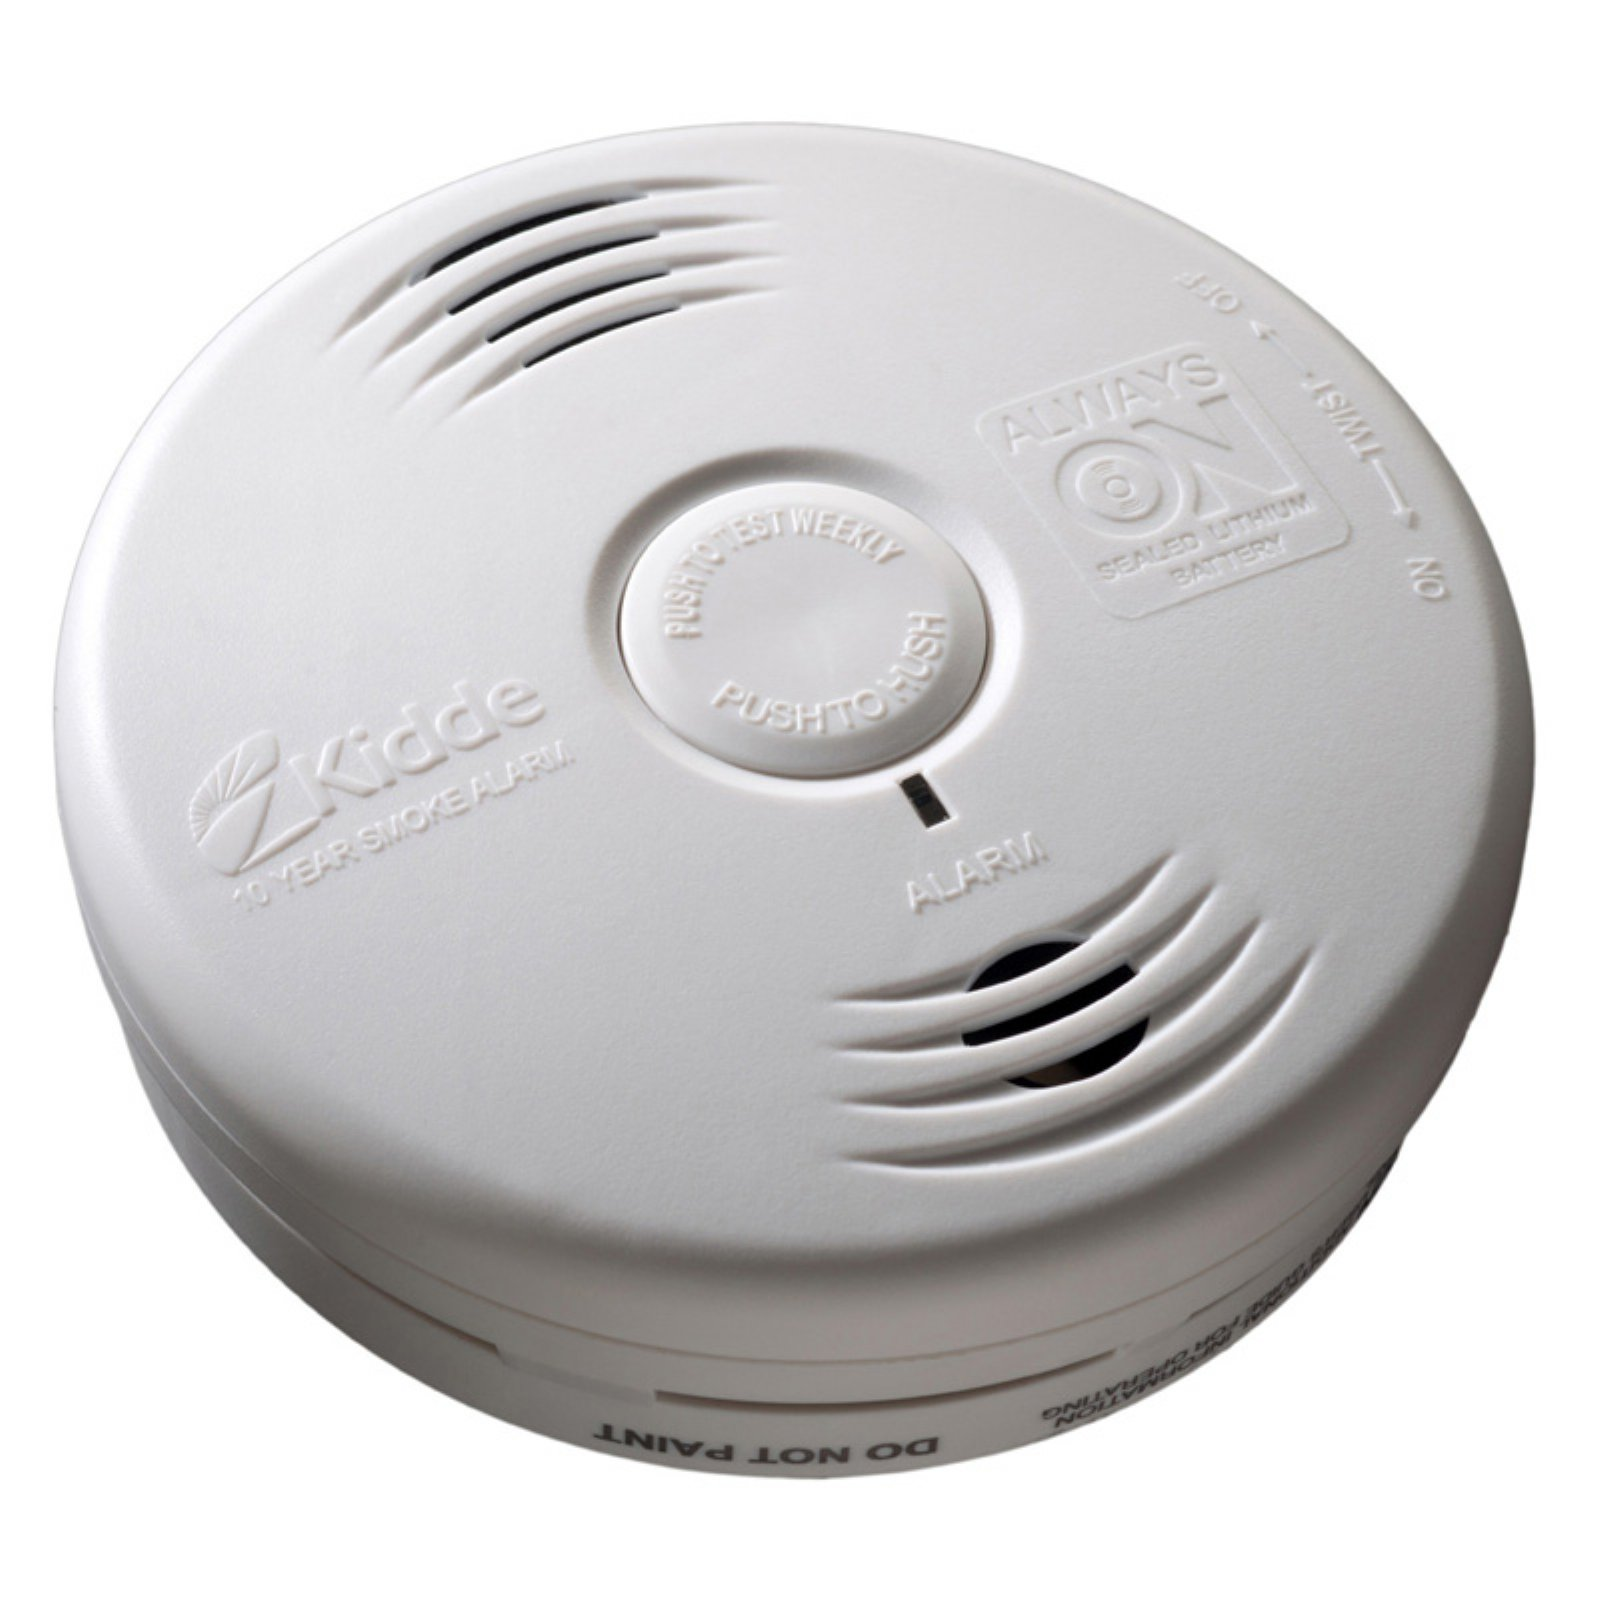 Kidde 10 Year Bedroom Smoke Alarm Smoke Alarms Smoke Alarm